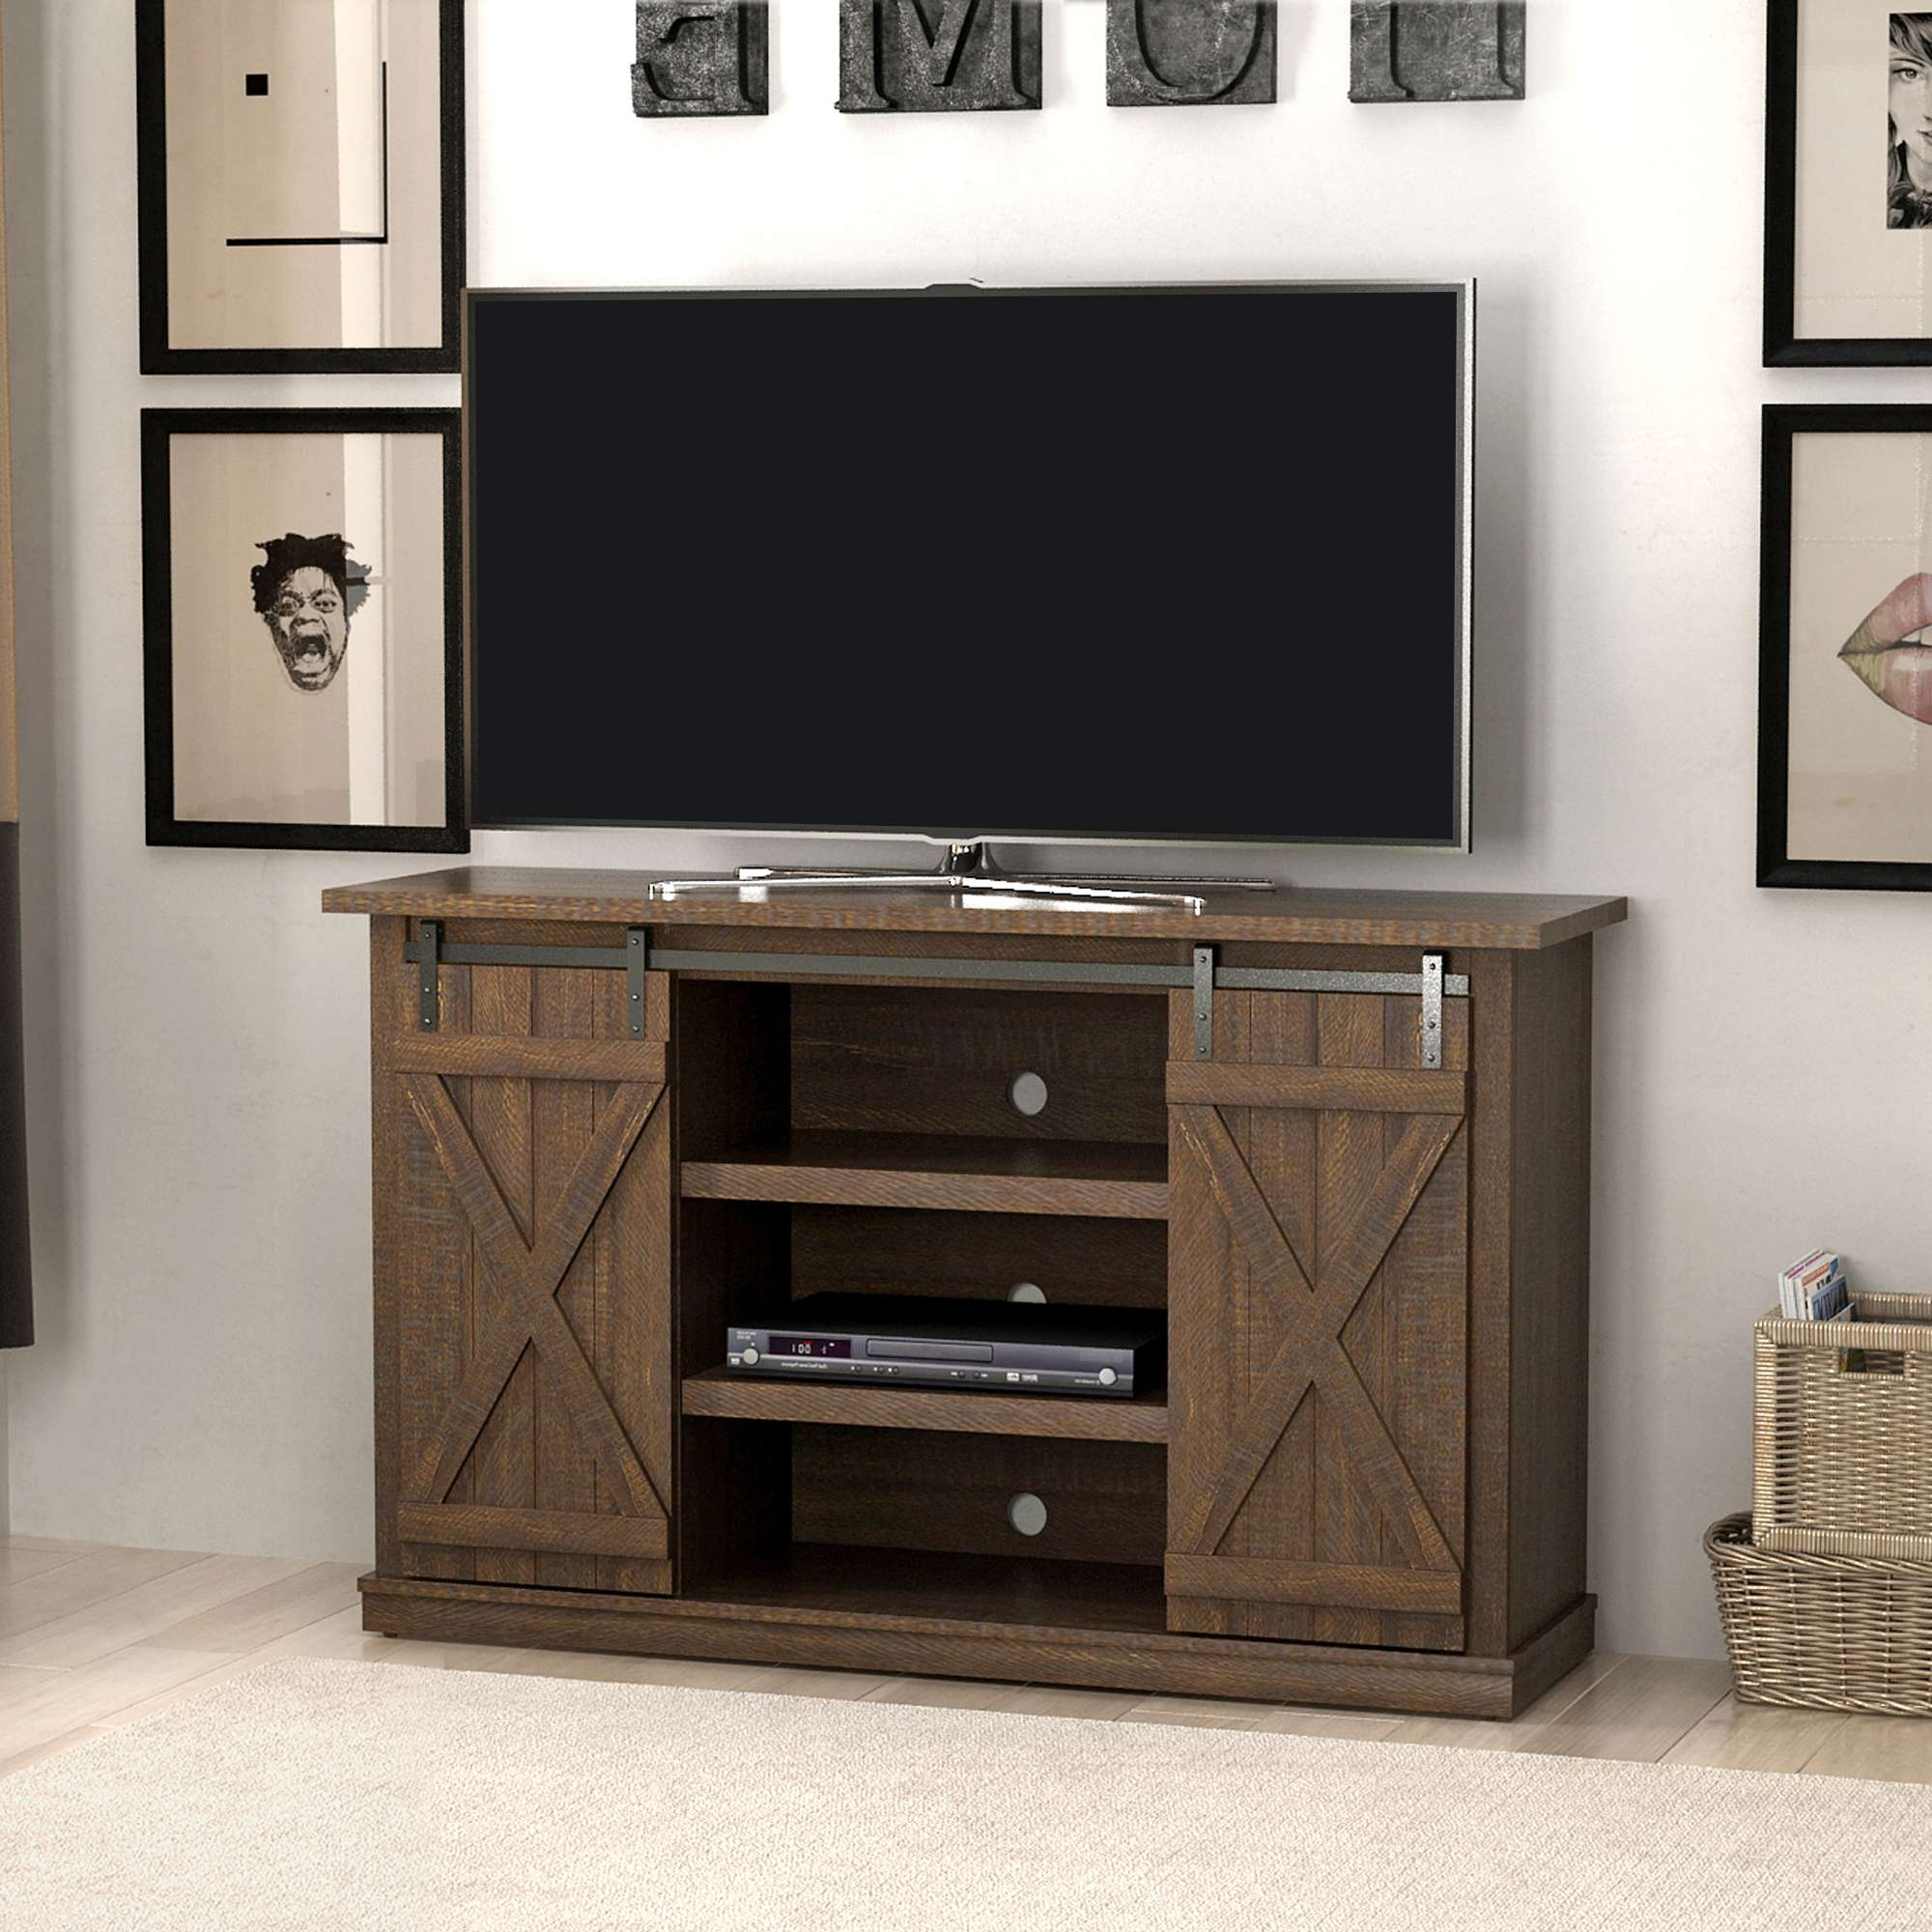 Tv Stands – Walmart In Tv Stands 40 Inches Wide (View 3 of 15)